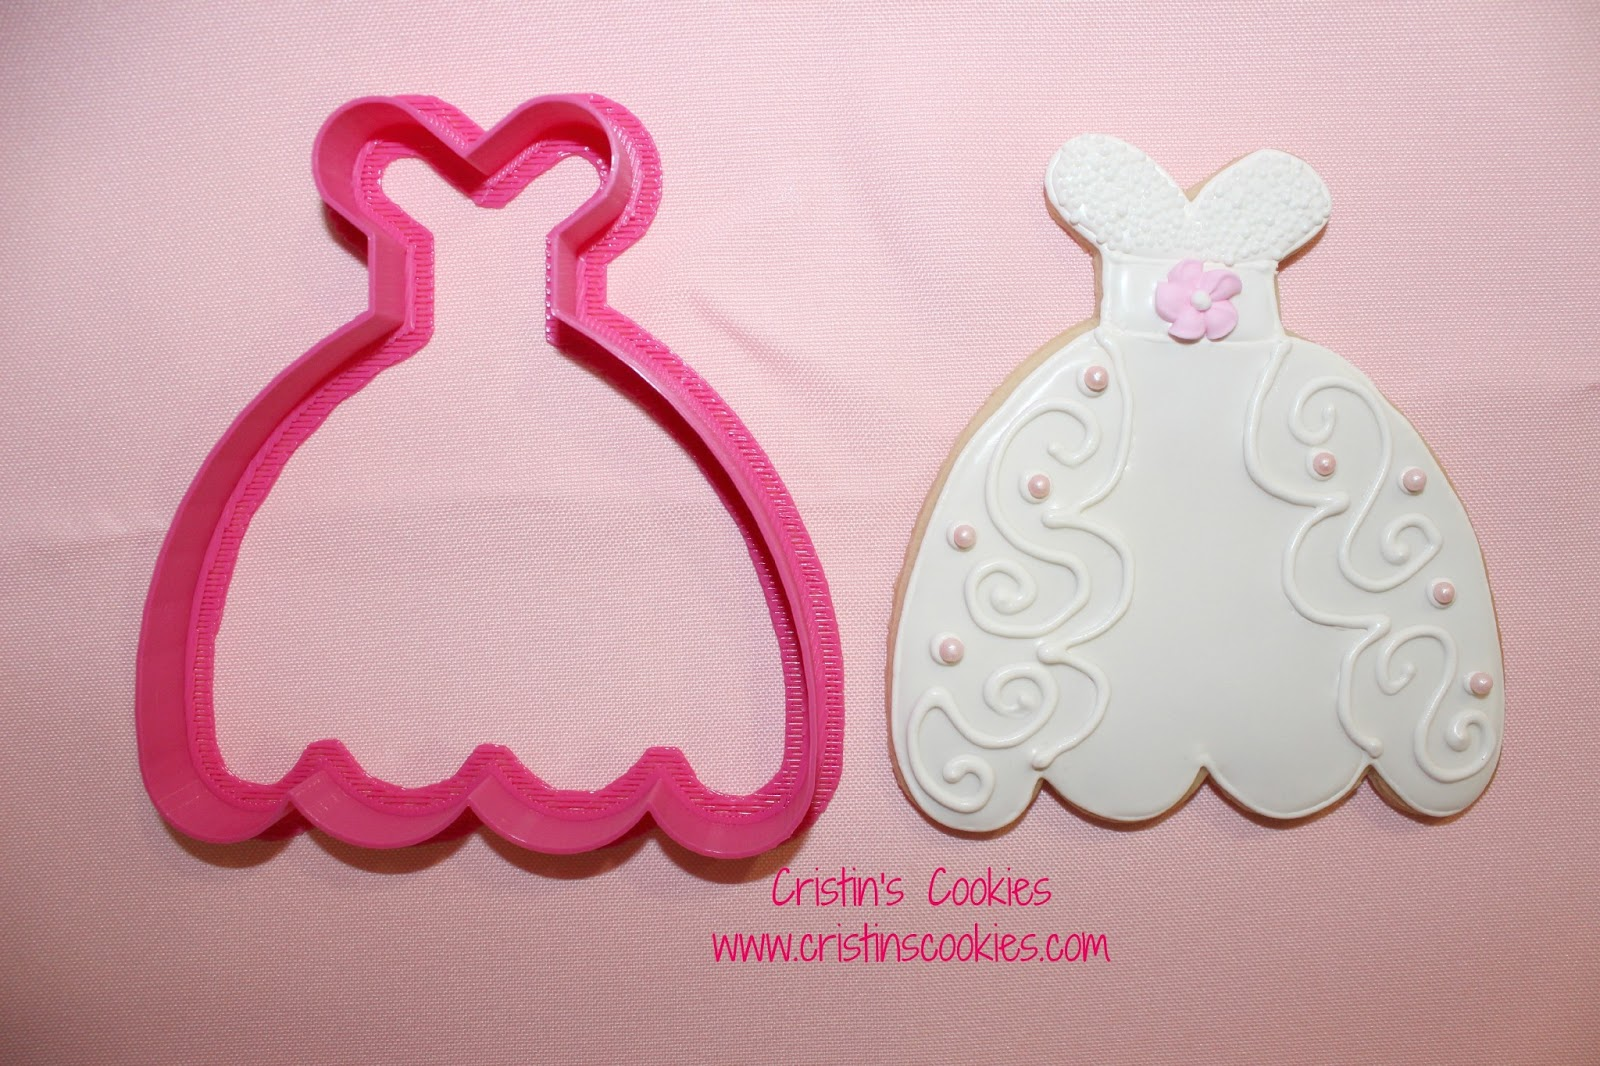 wedding dress cookies and new cookie wedding dress cookie cutter Wedding Dress Cookies and a New Cookie Cutter